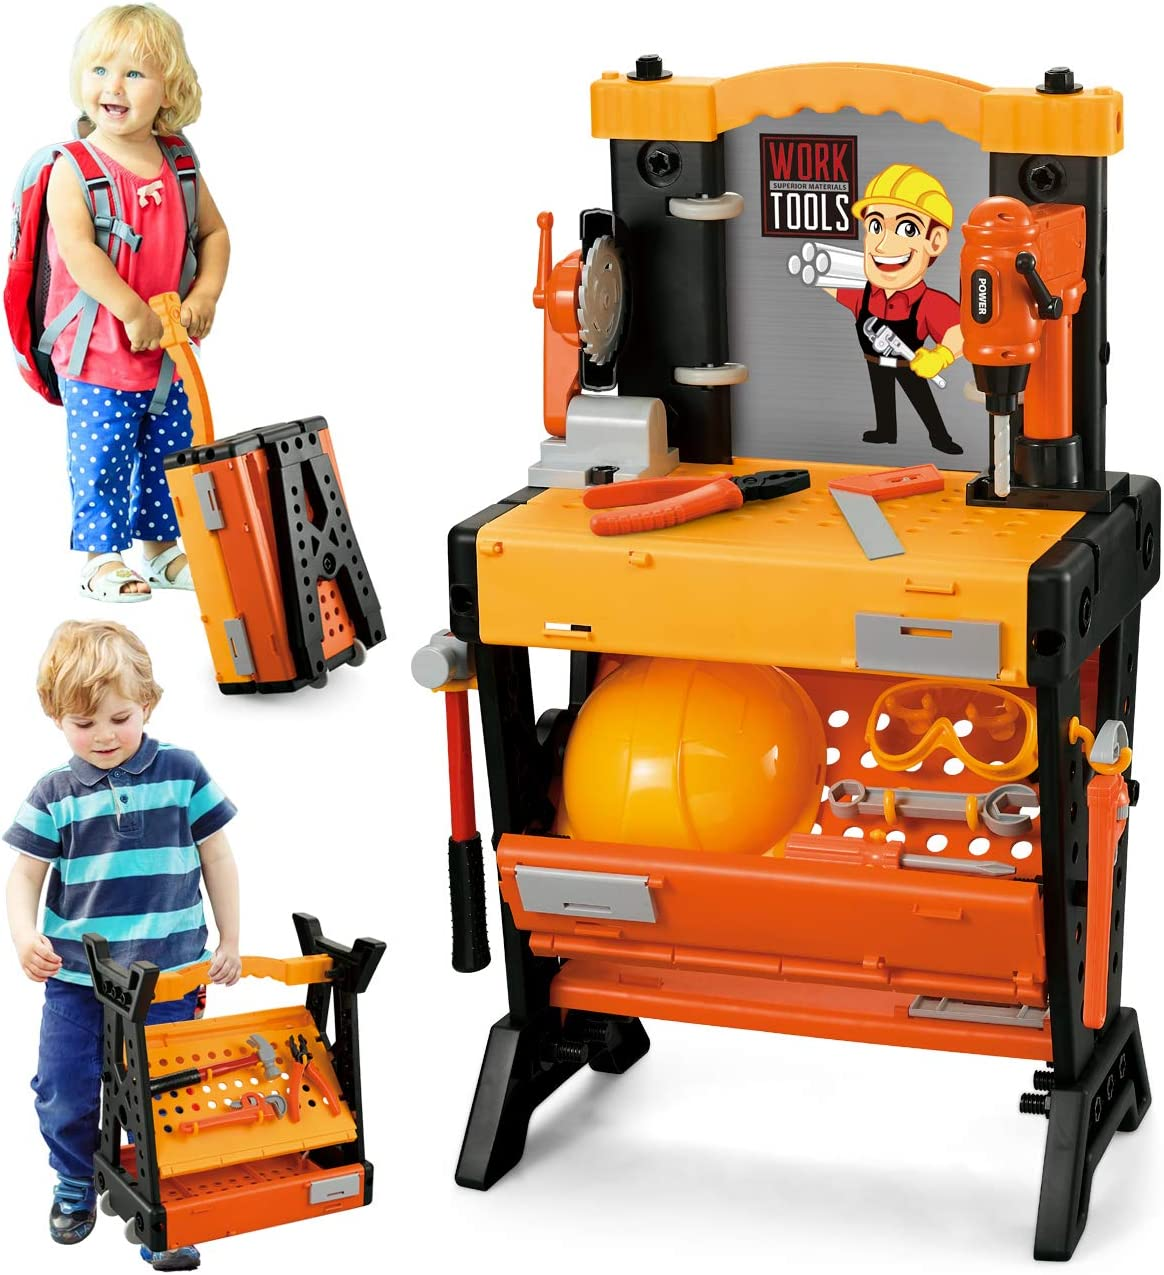 Exercise N Play 124PCS Workbench Kids Tool Sets Workshop Construction Box Kits,Realistic Children's Educational Play - Best Tool Kit Bench for Toddlers Kids Boys and Girls